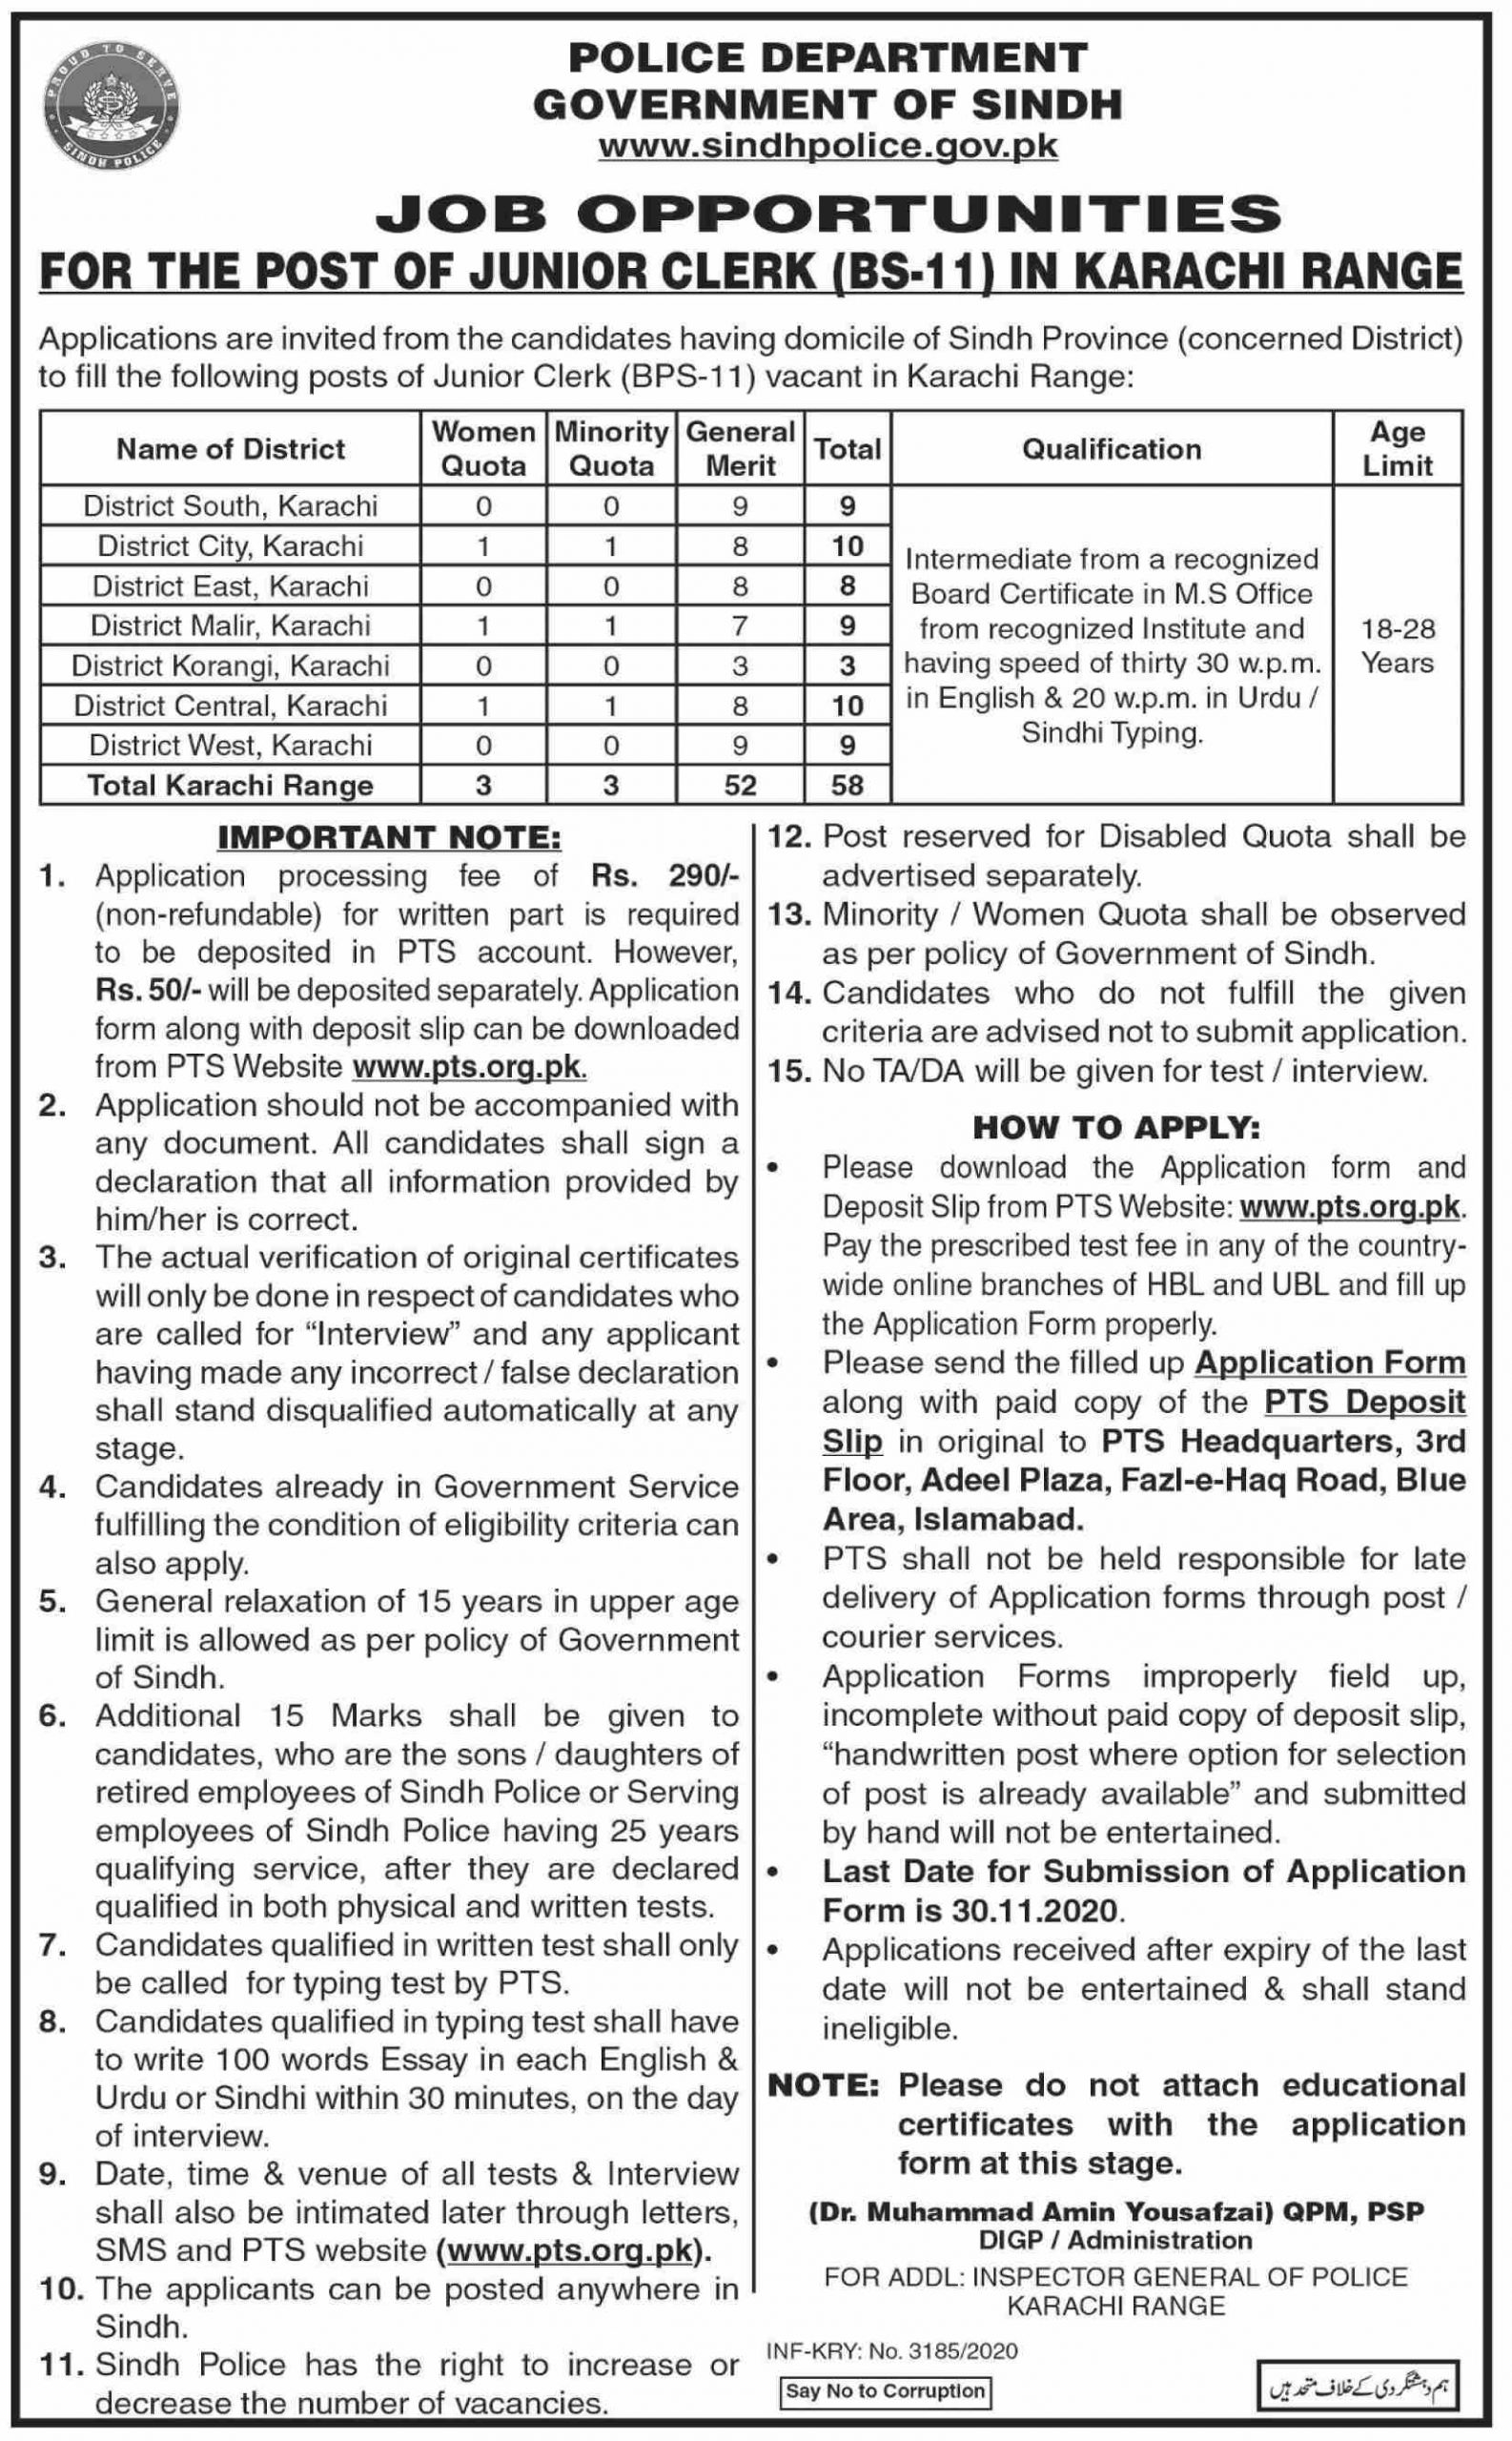 Police Department Government of Sindh Latest Jobs November 2020